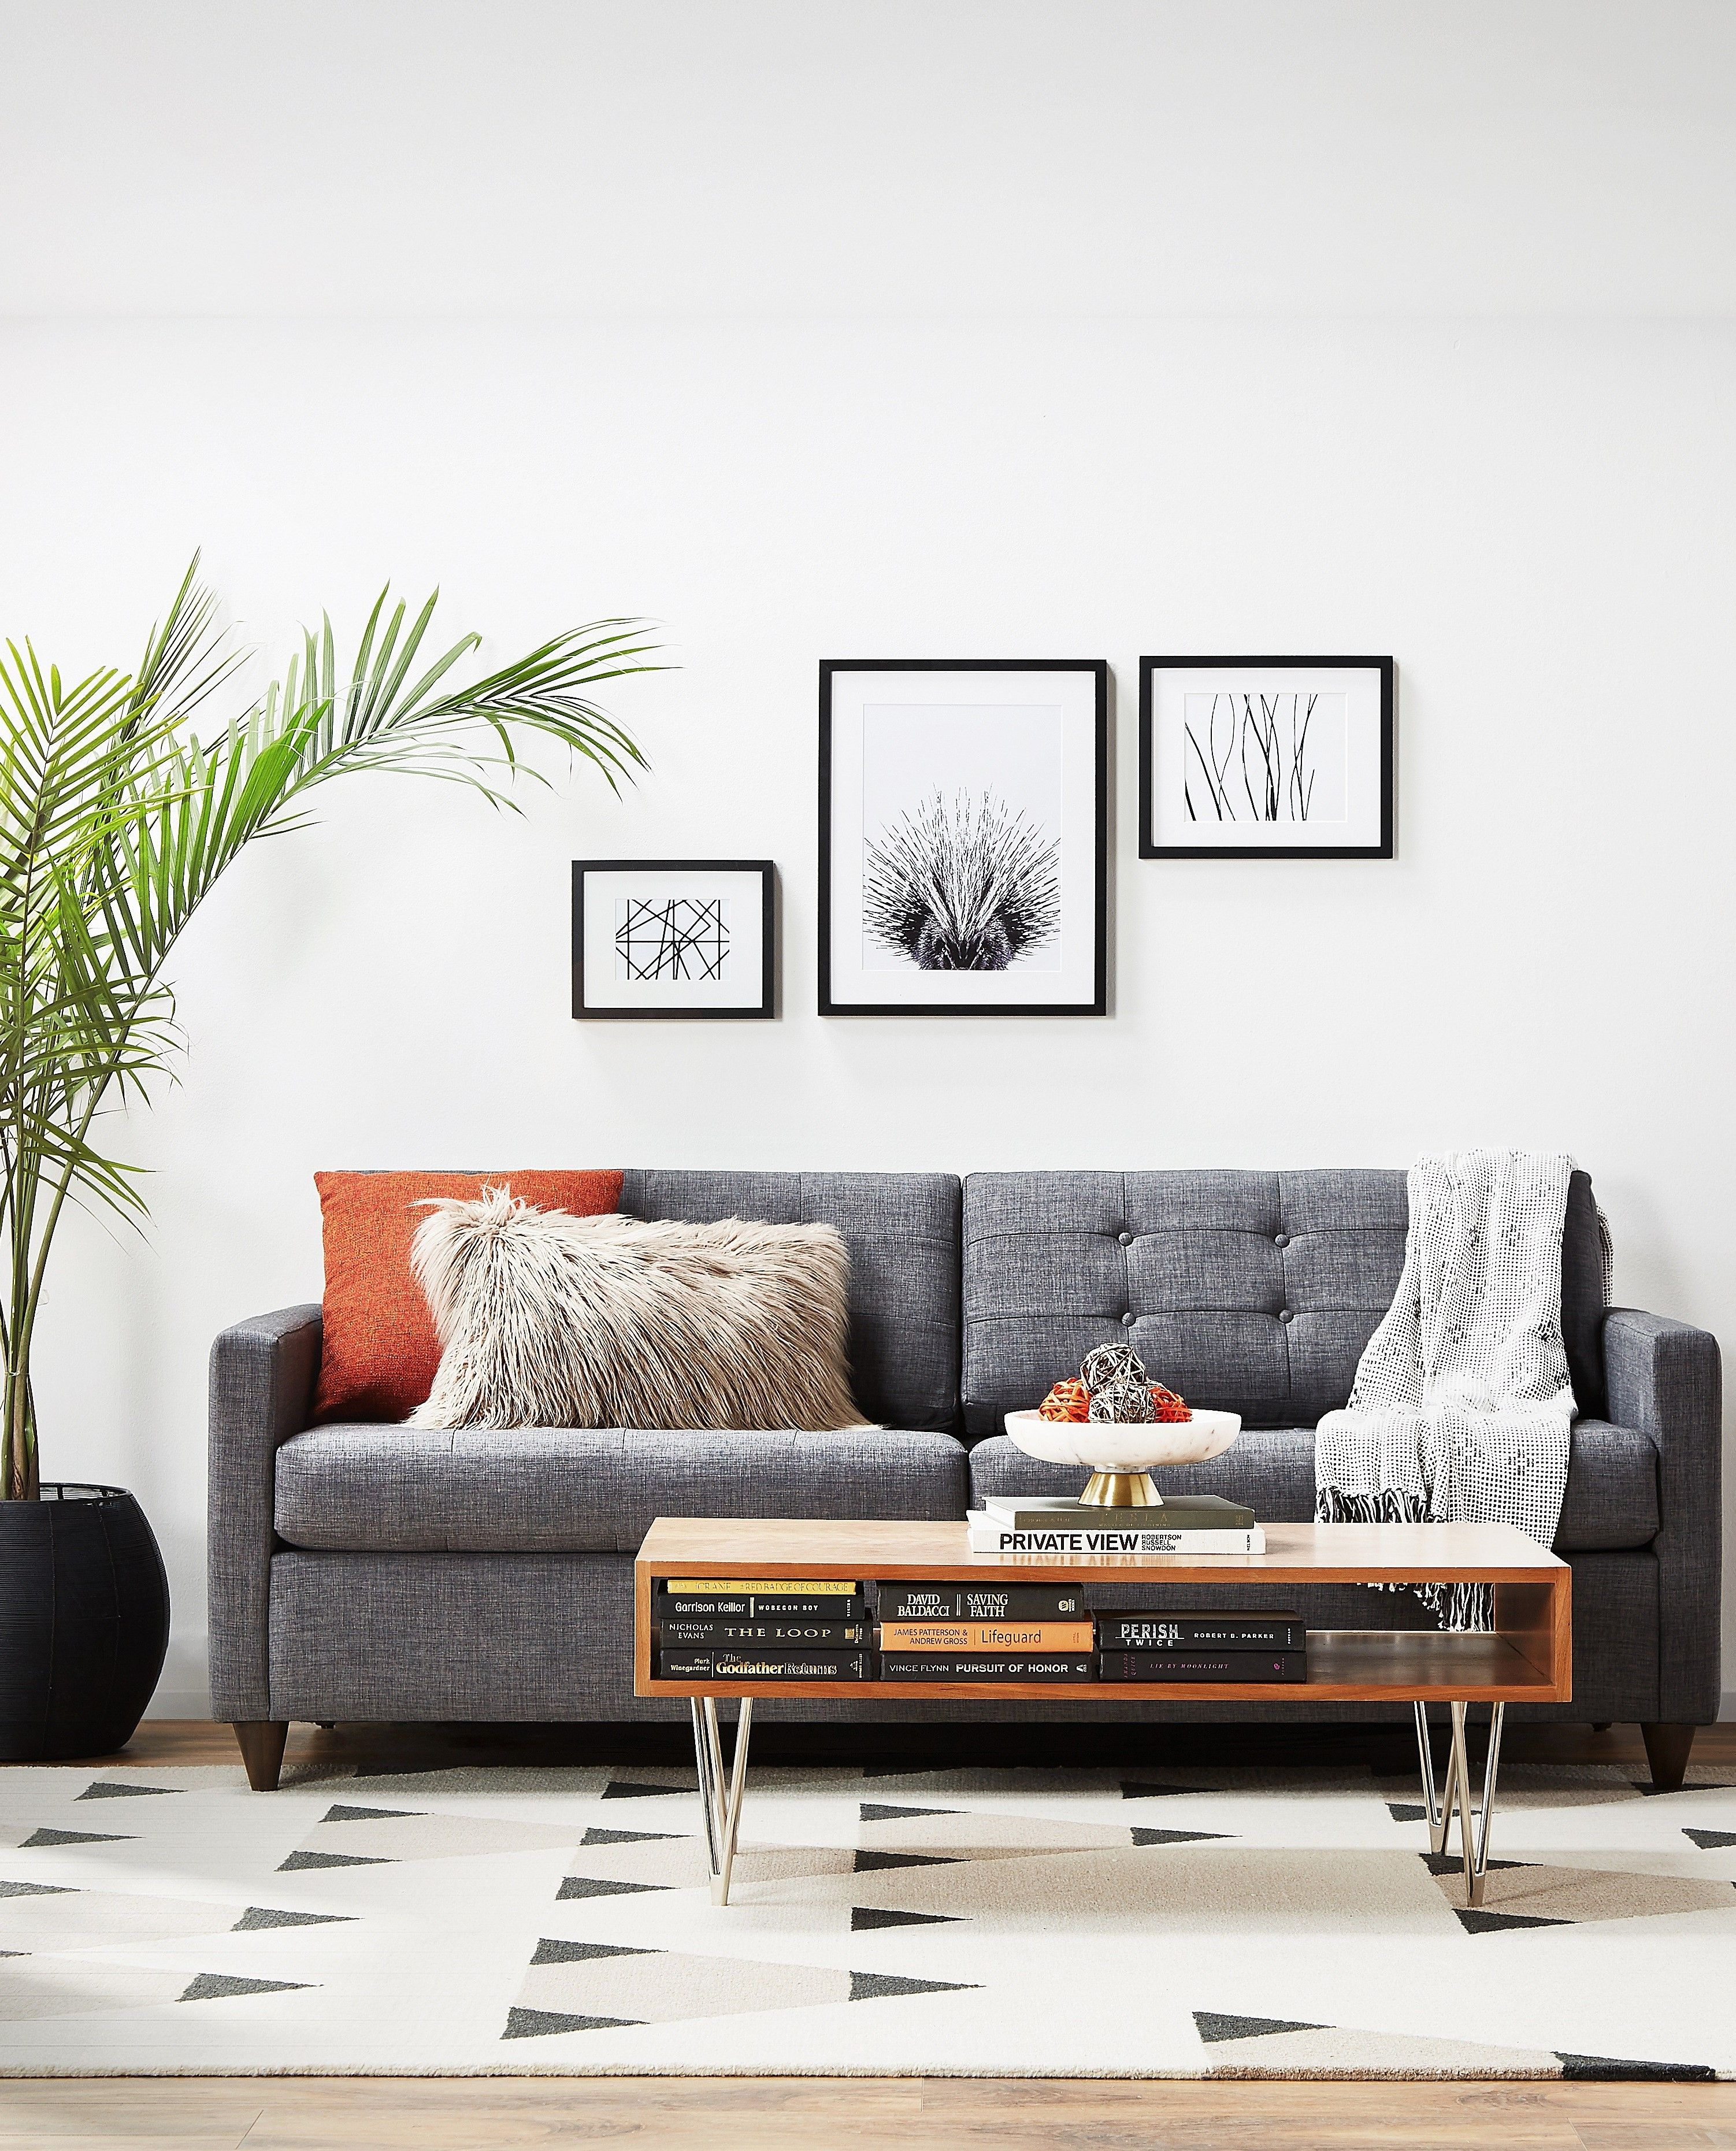 15 Best Modern Furniture For Small Spaces